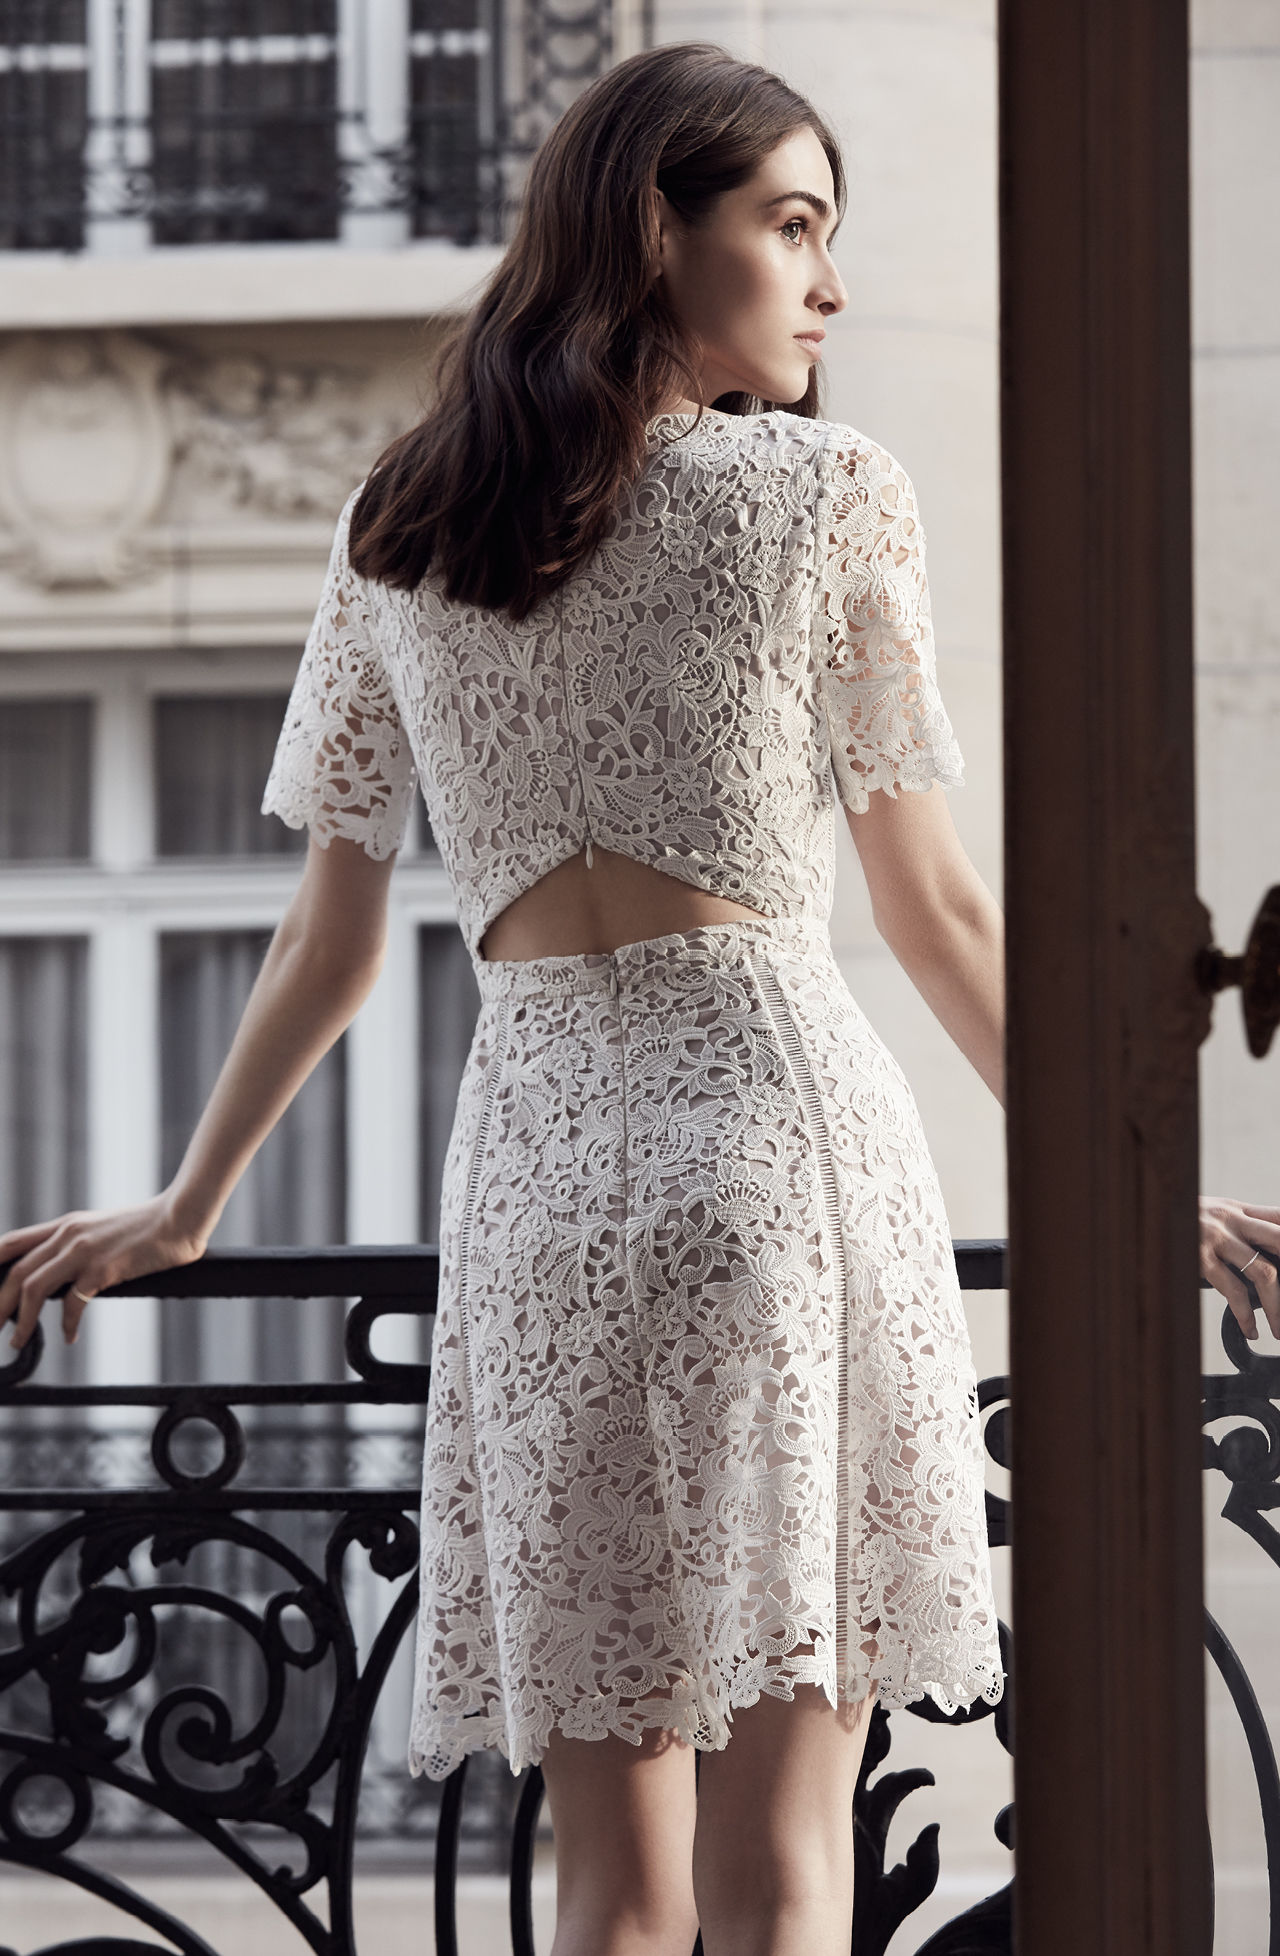 Wedding Guest Outfit Ideas